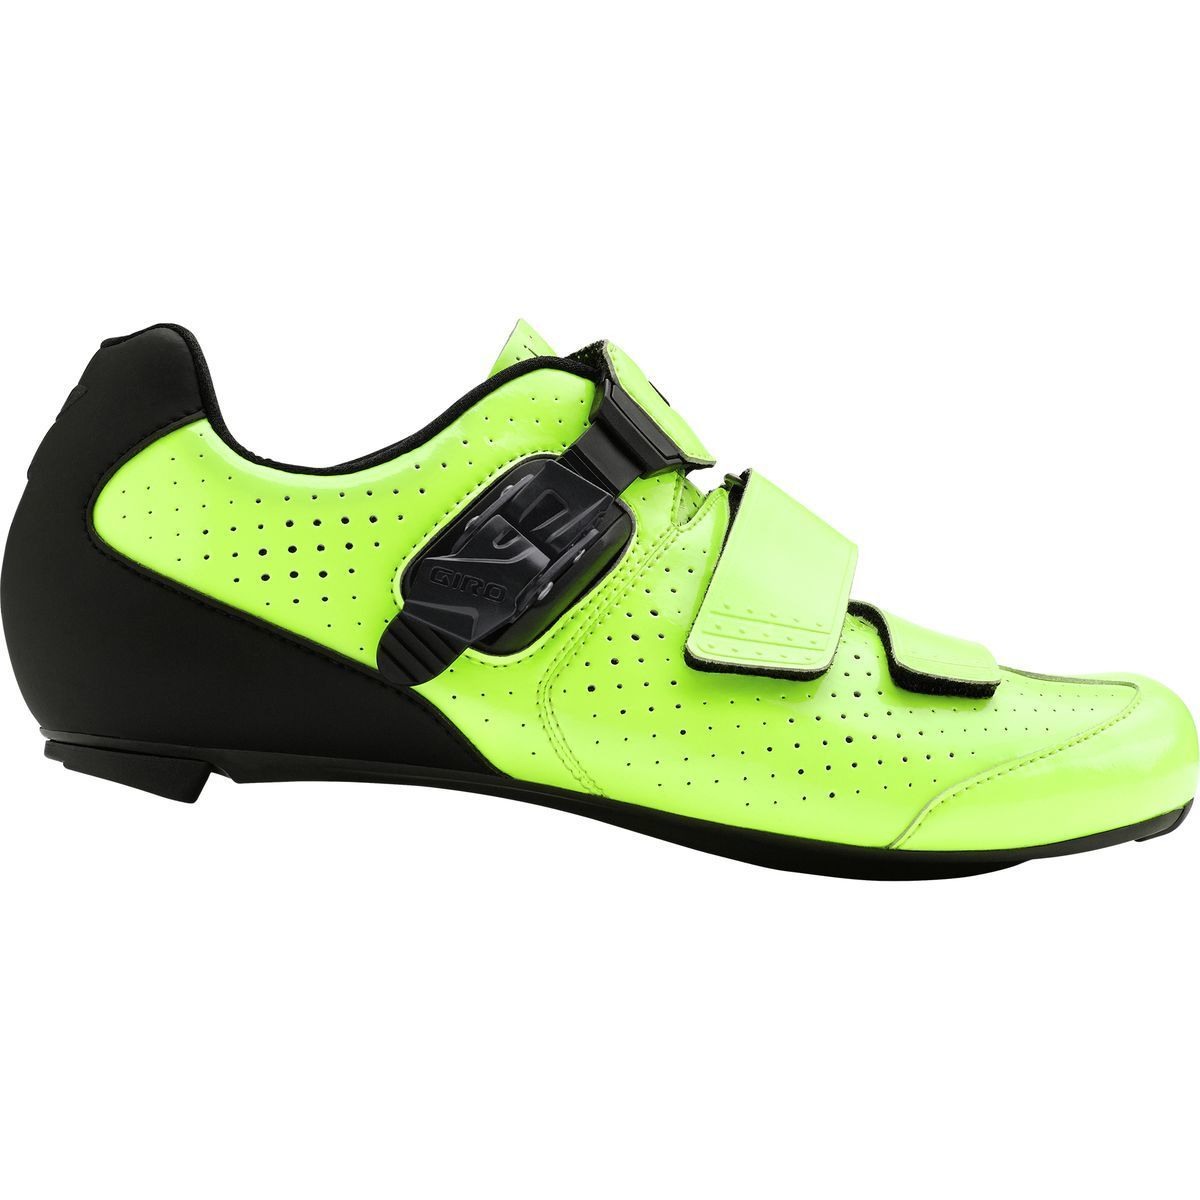 Giro Trans E70 Shoes Men's